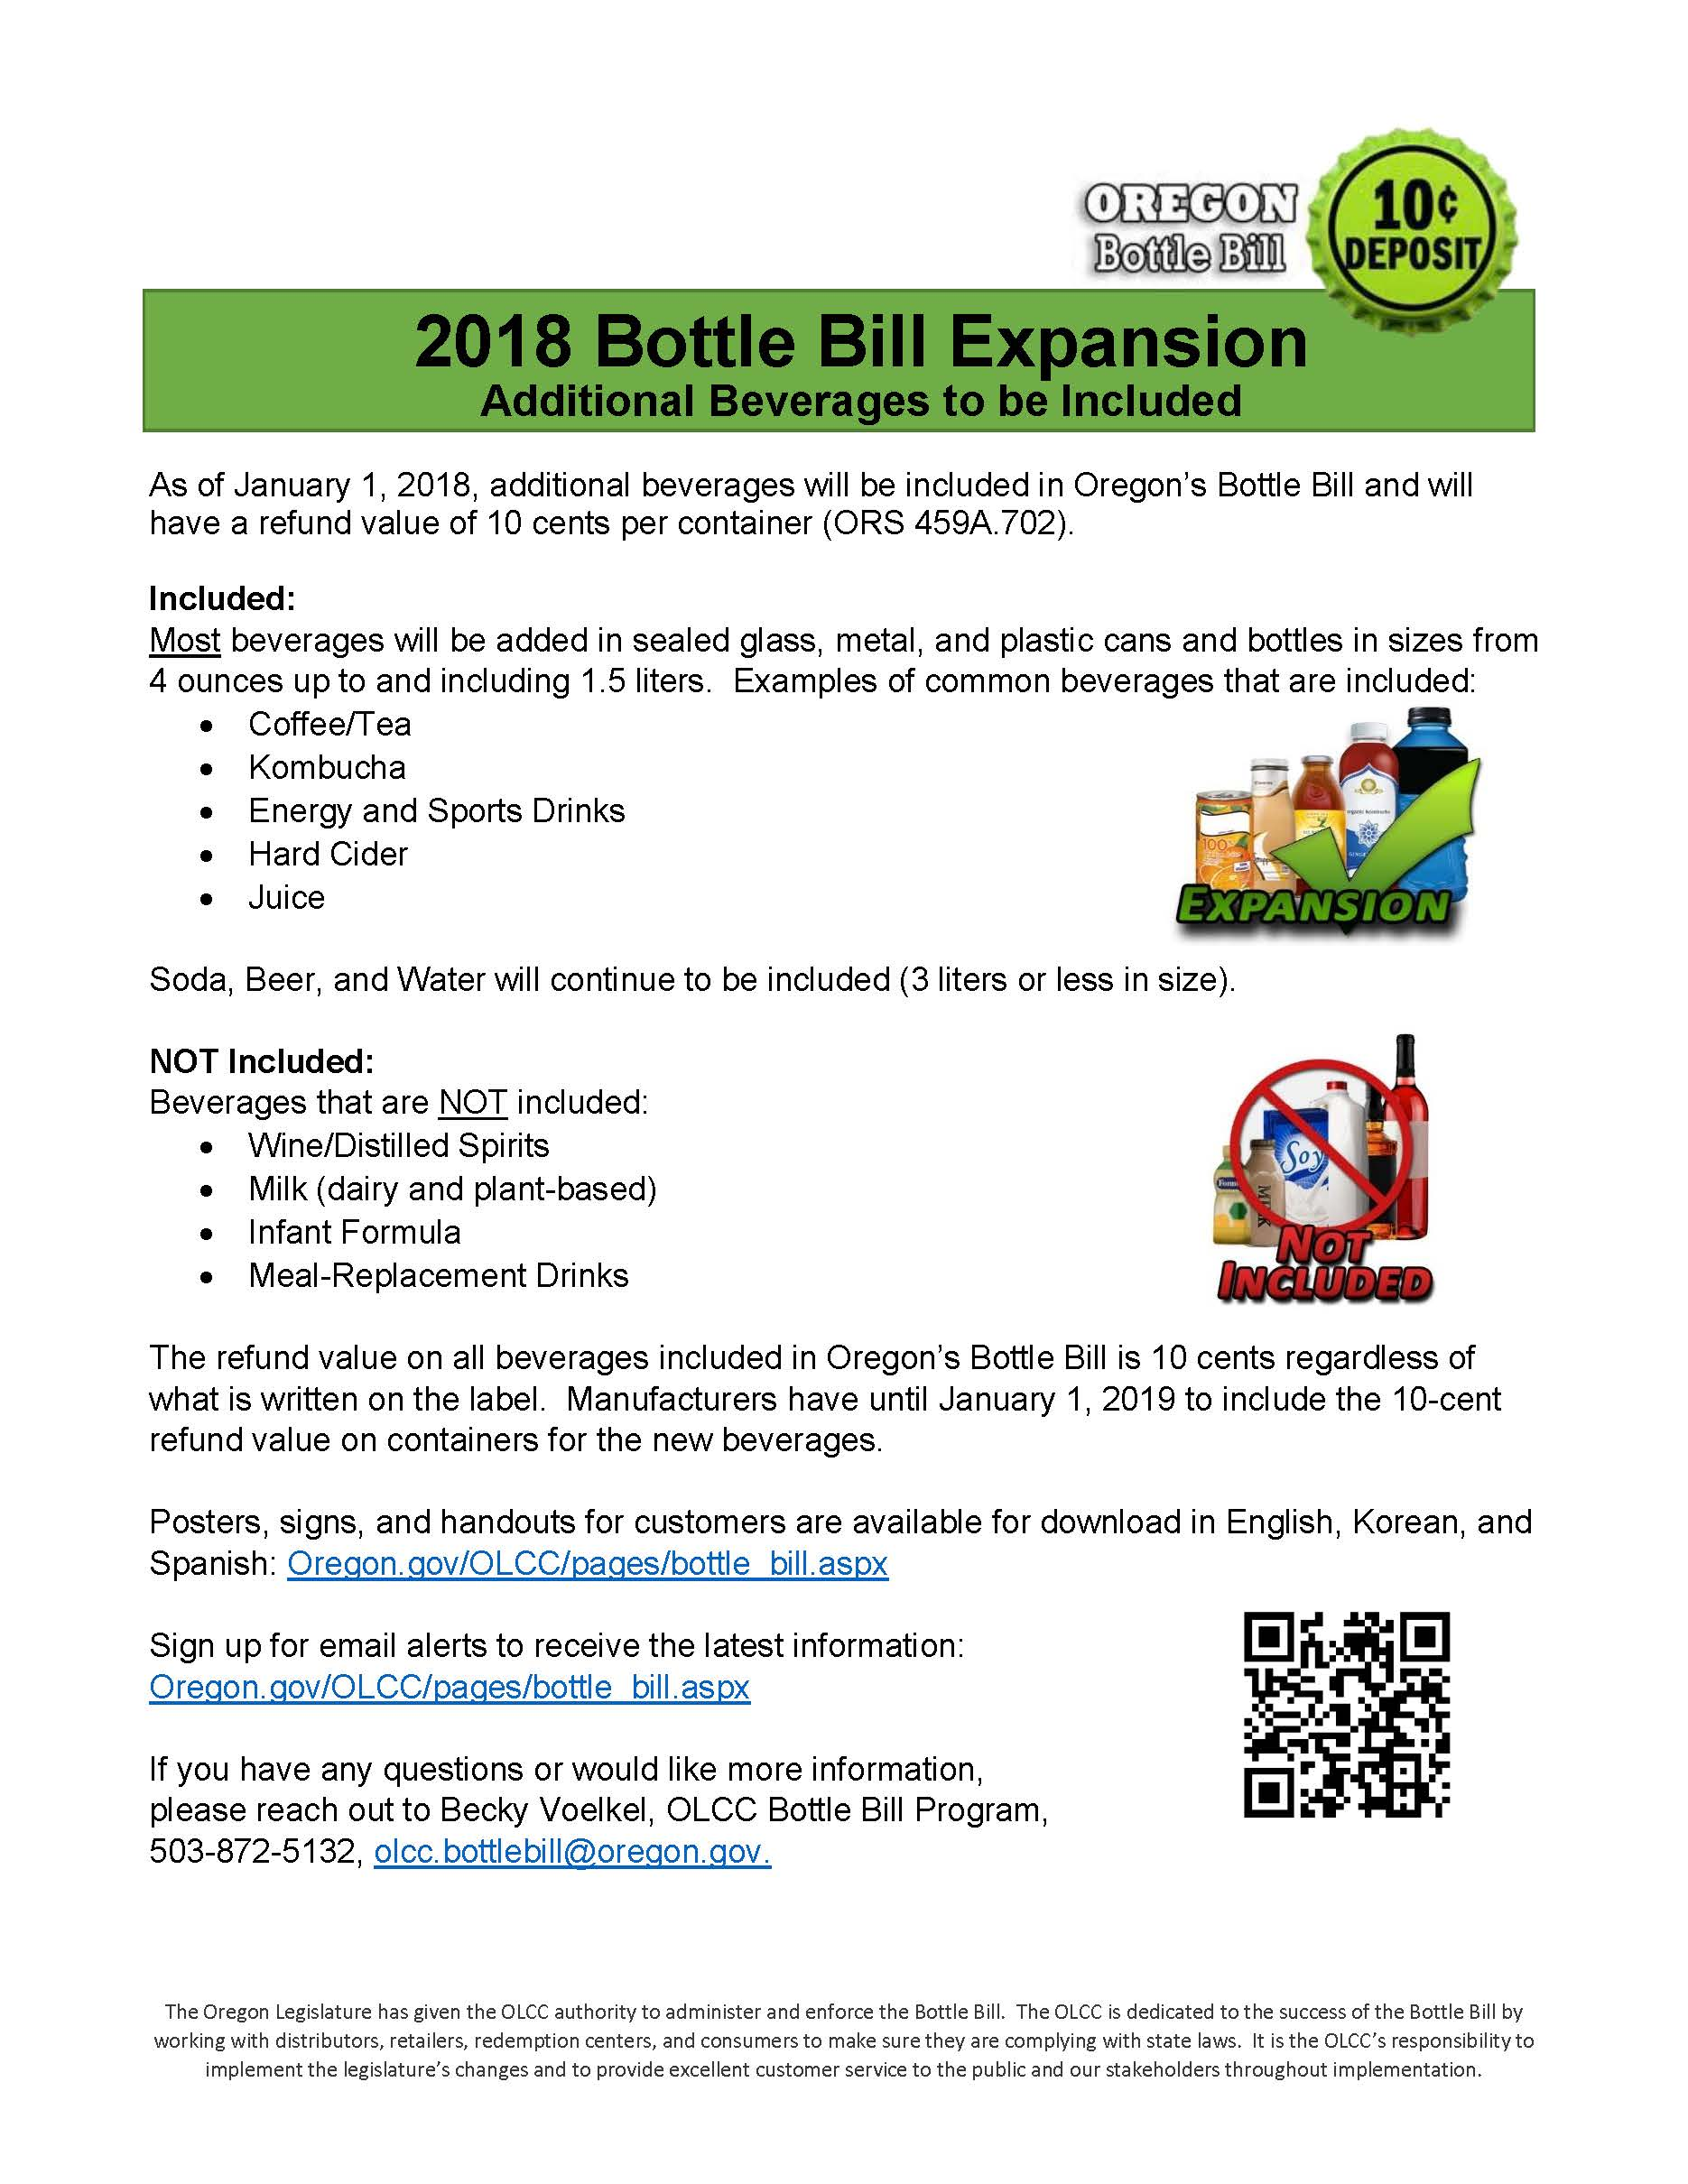 2018 Bottle Bill Expansion (Click for larger)